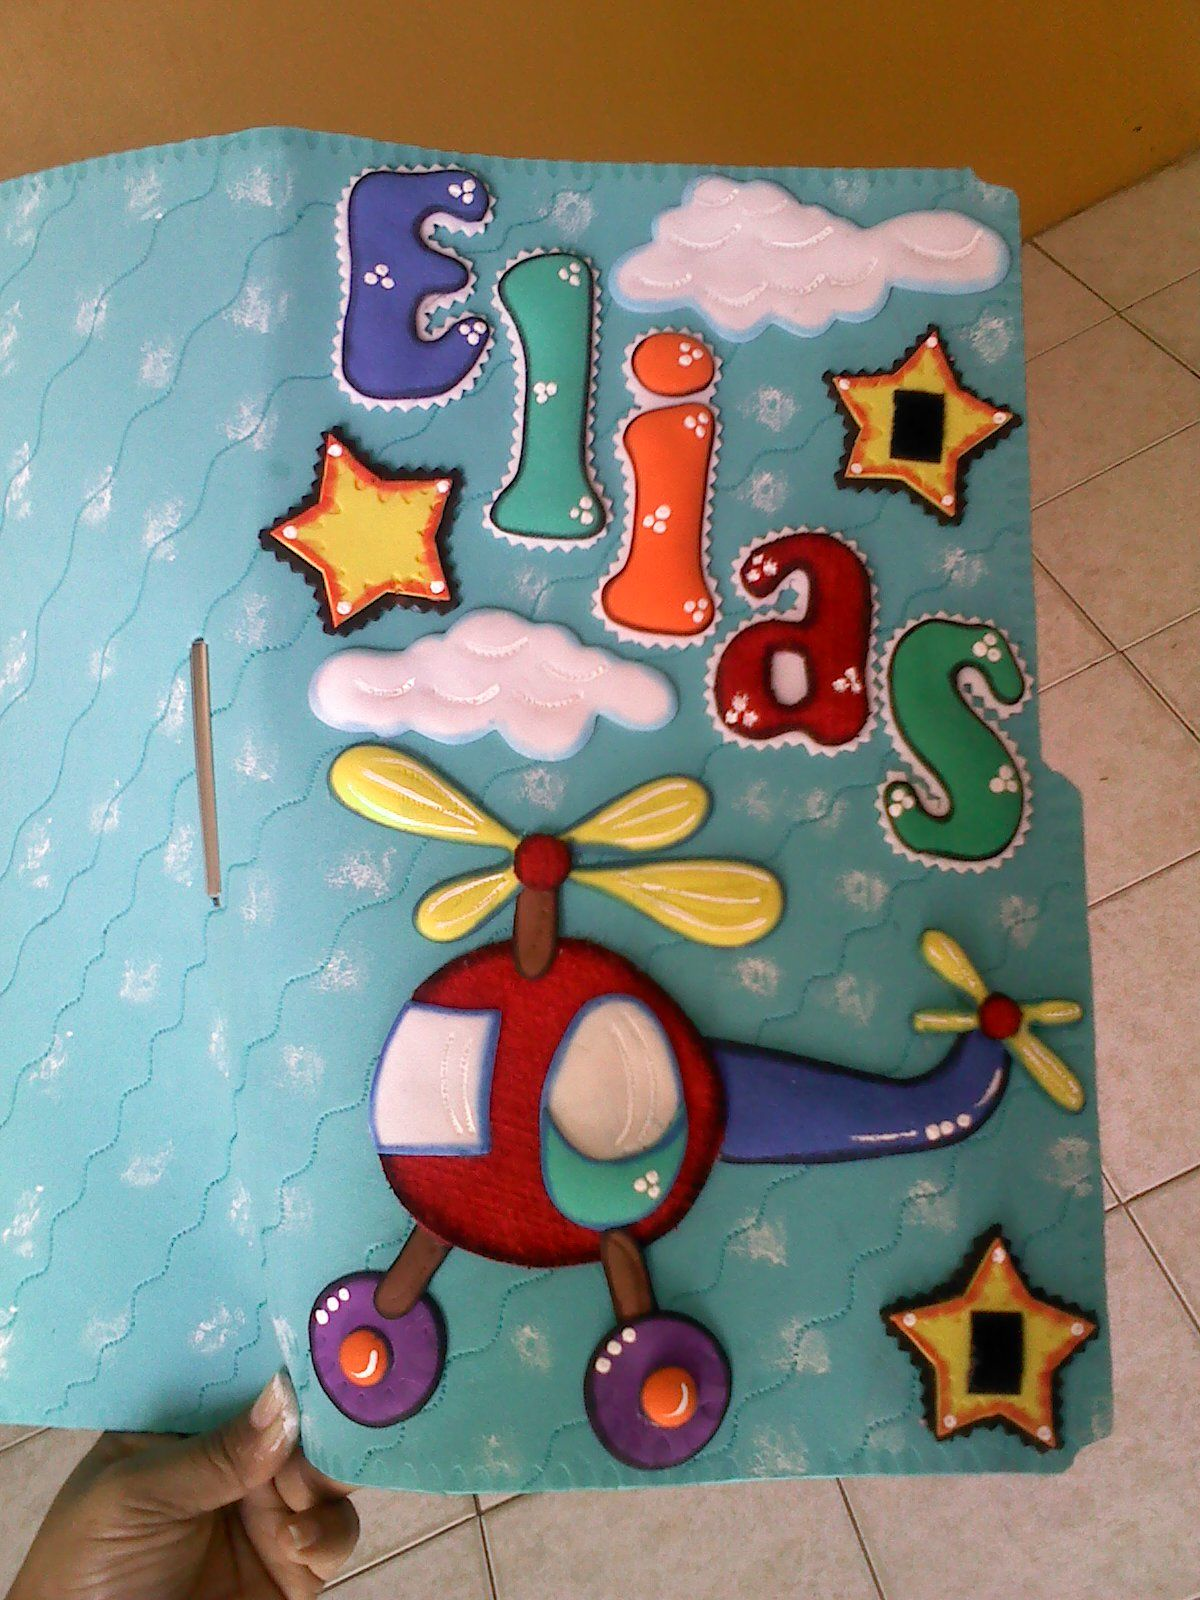 Carpeta decorada para control maternal Ni±o carpetas